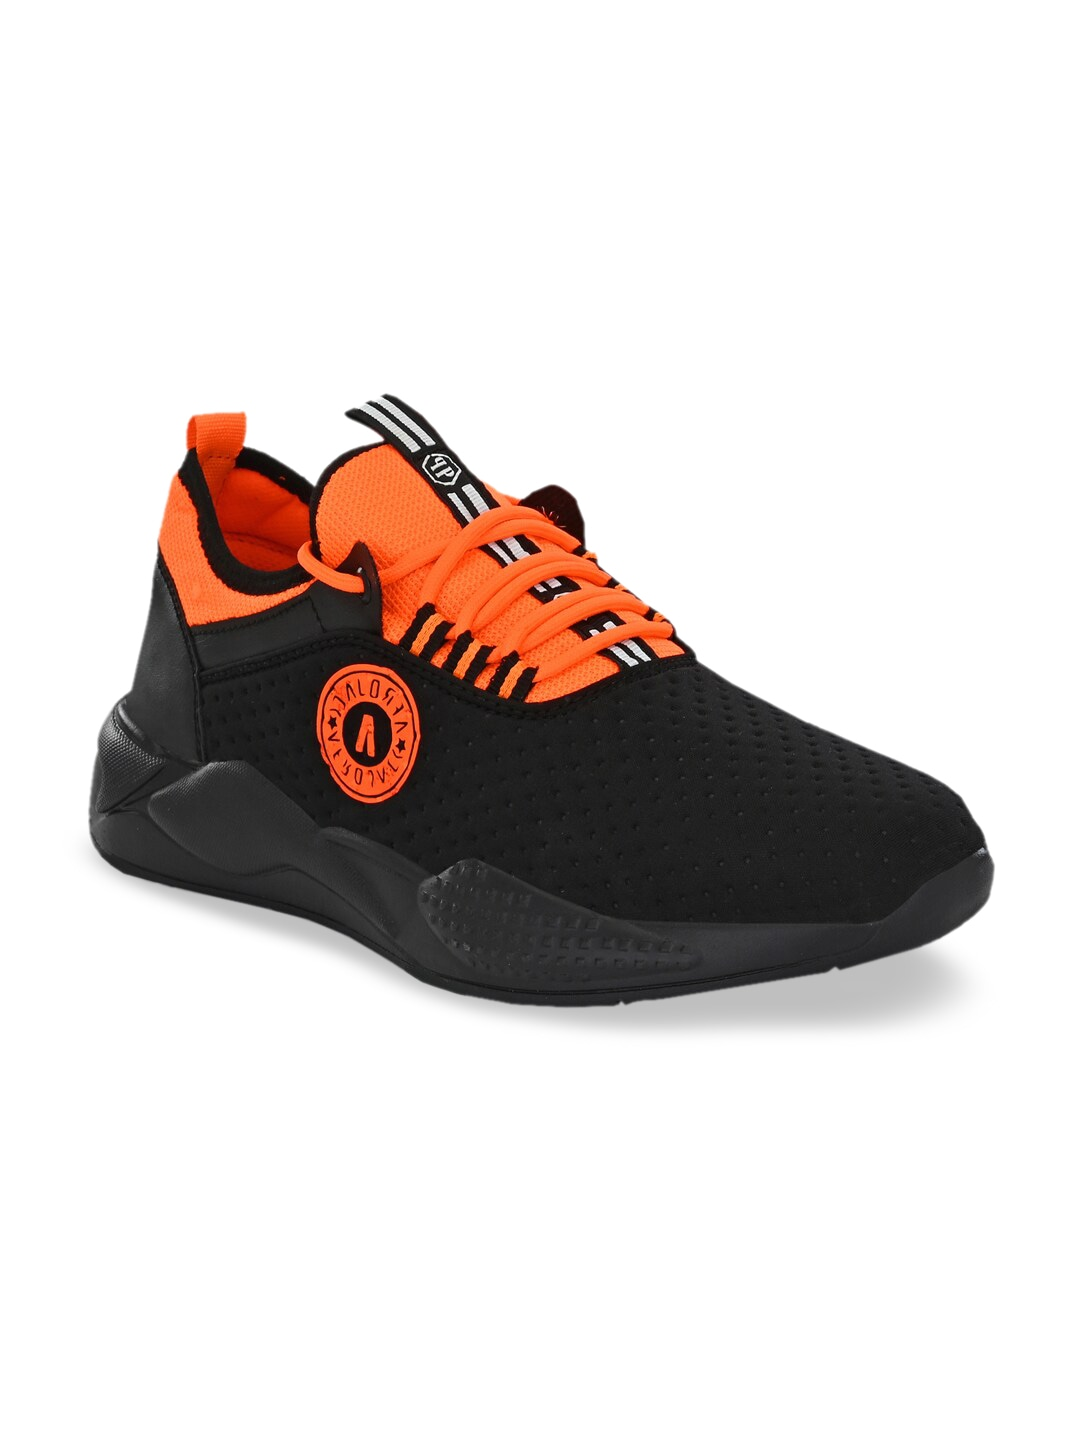 Black & Orange Textile Training or Gym Shoes